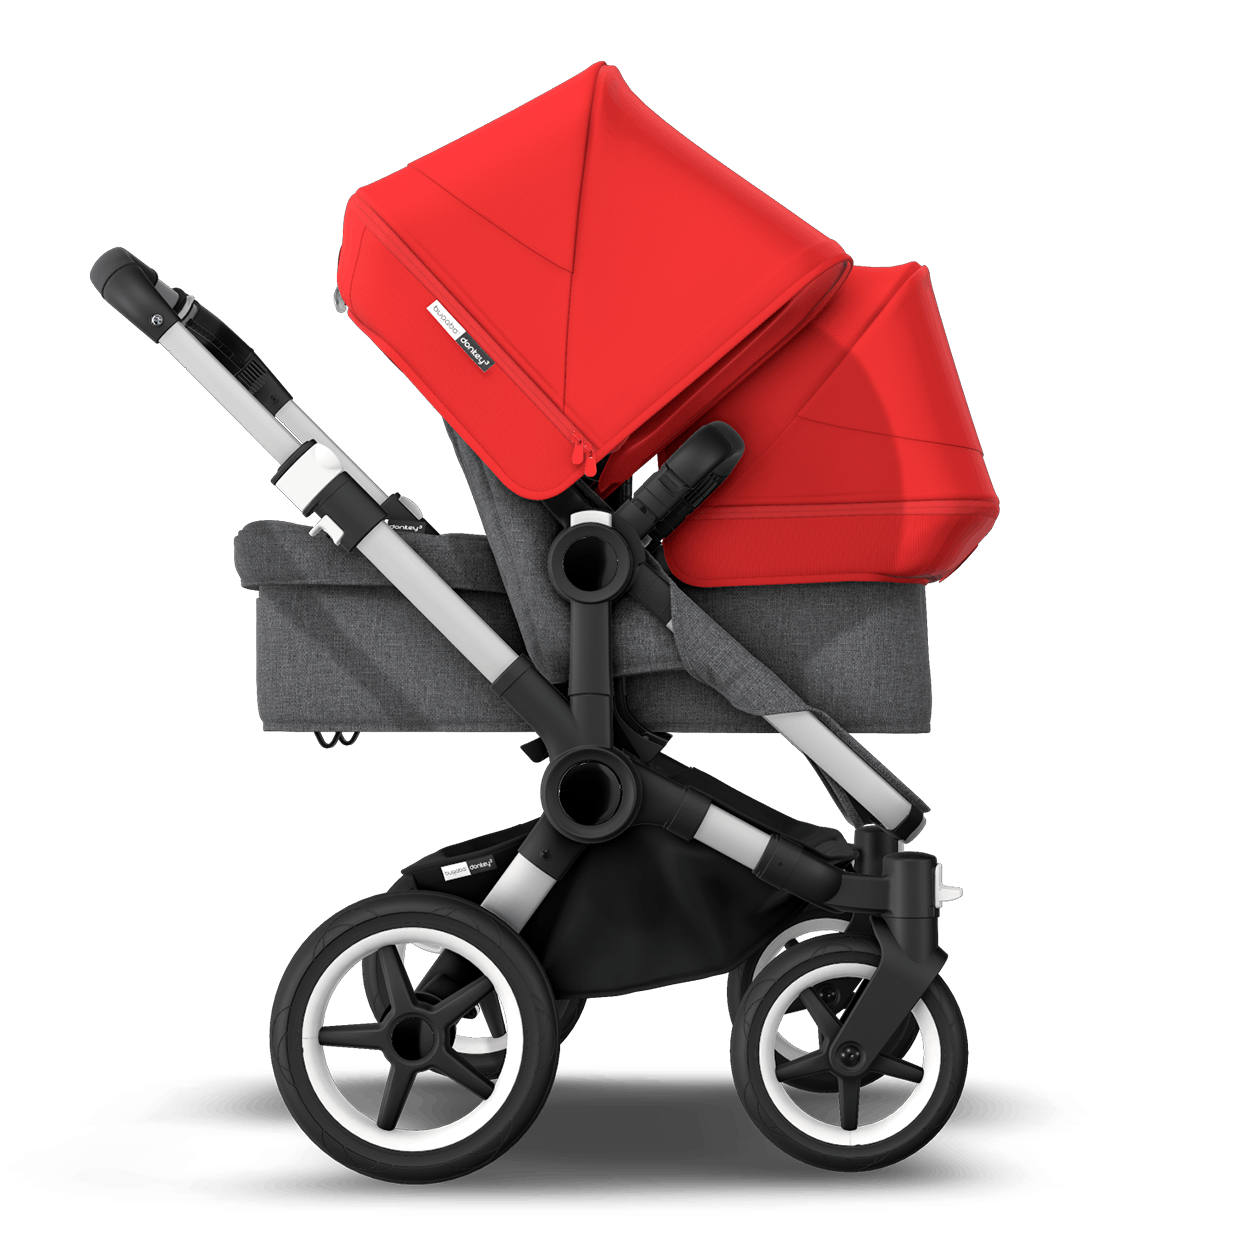 Bugaboo Donkey 3 Duo | Double strollers | Bugaboo.com